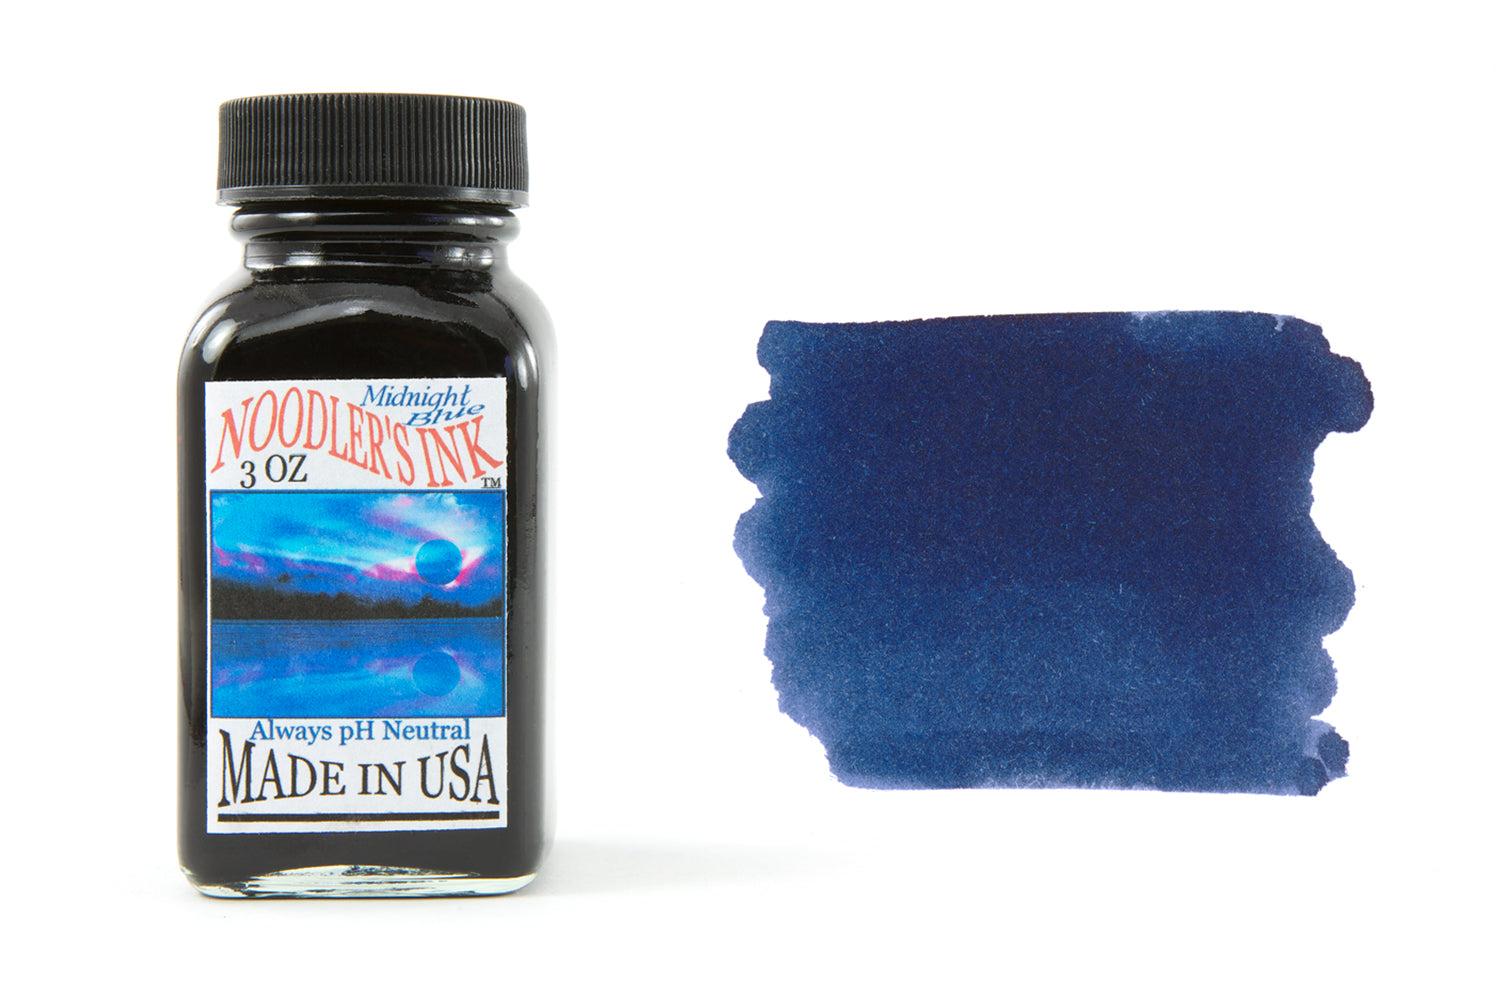 Noodler's Midnight Blue - 3oz Bottled Ink